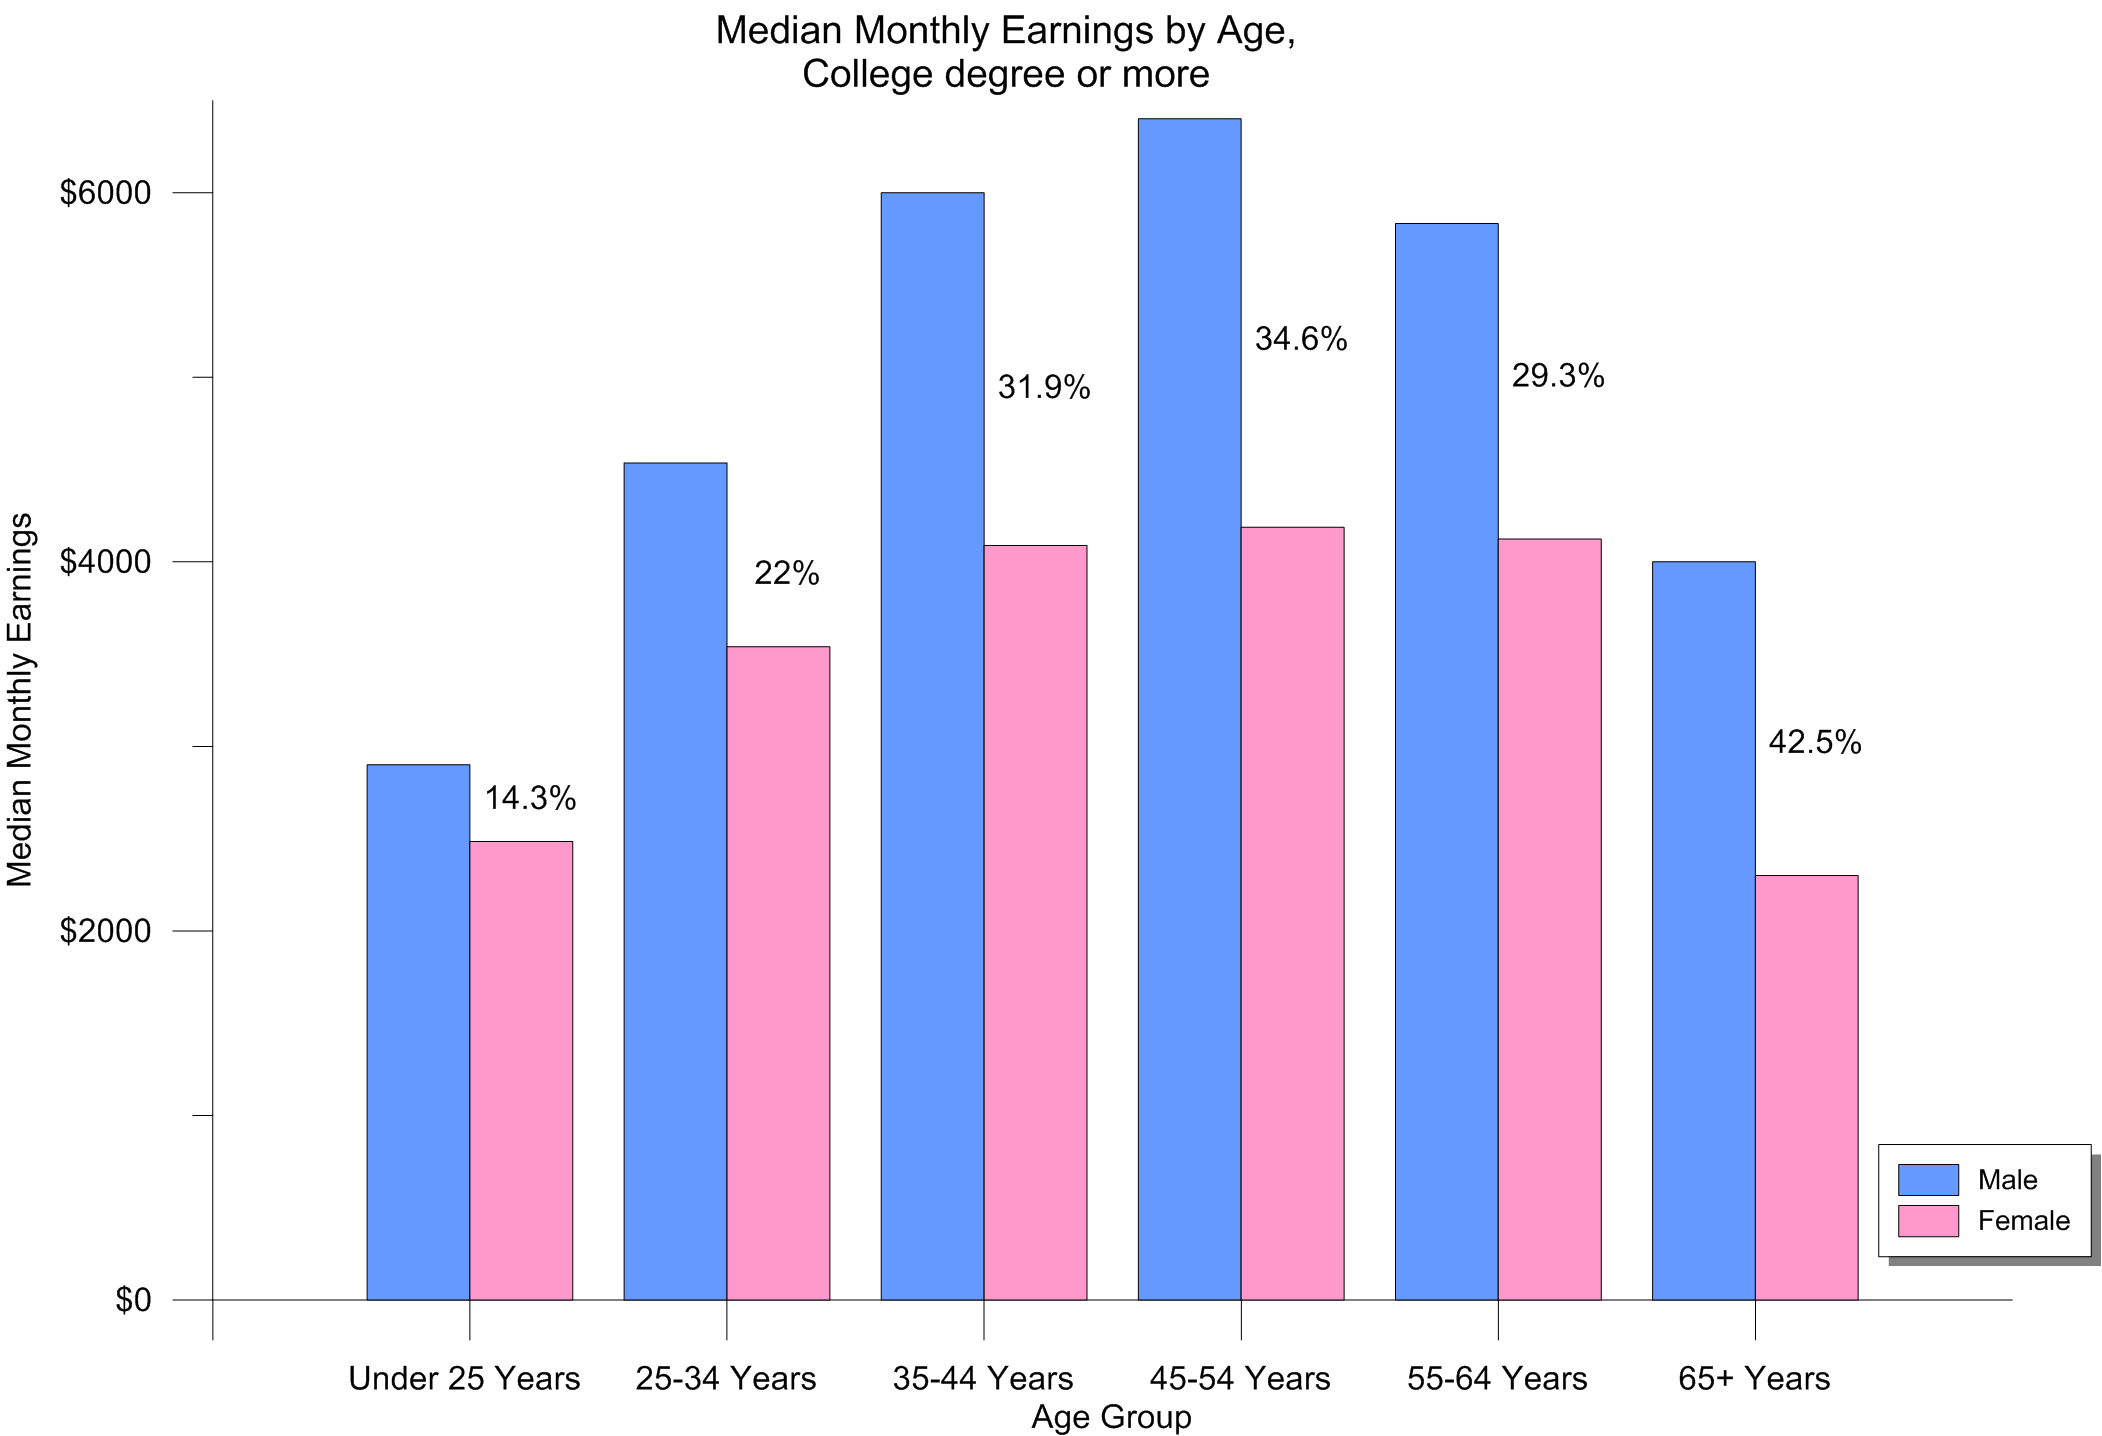 Bar chart displaying median monthly earnings for college graduates